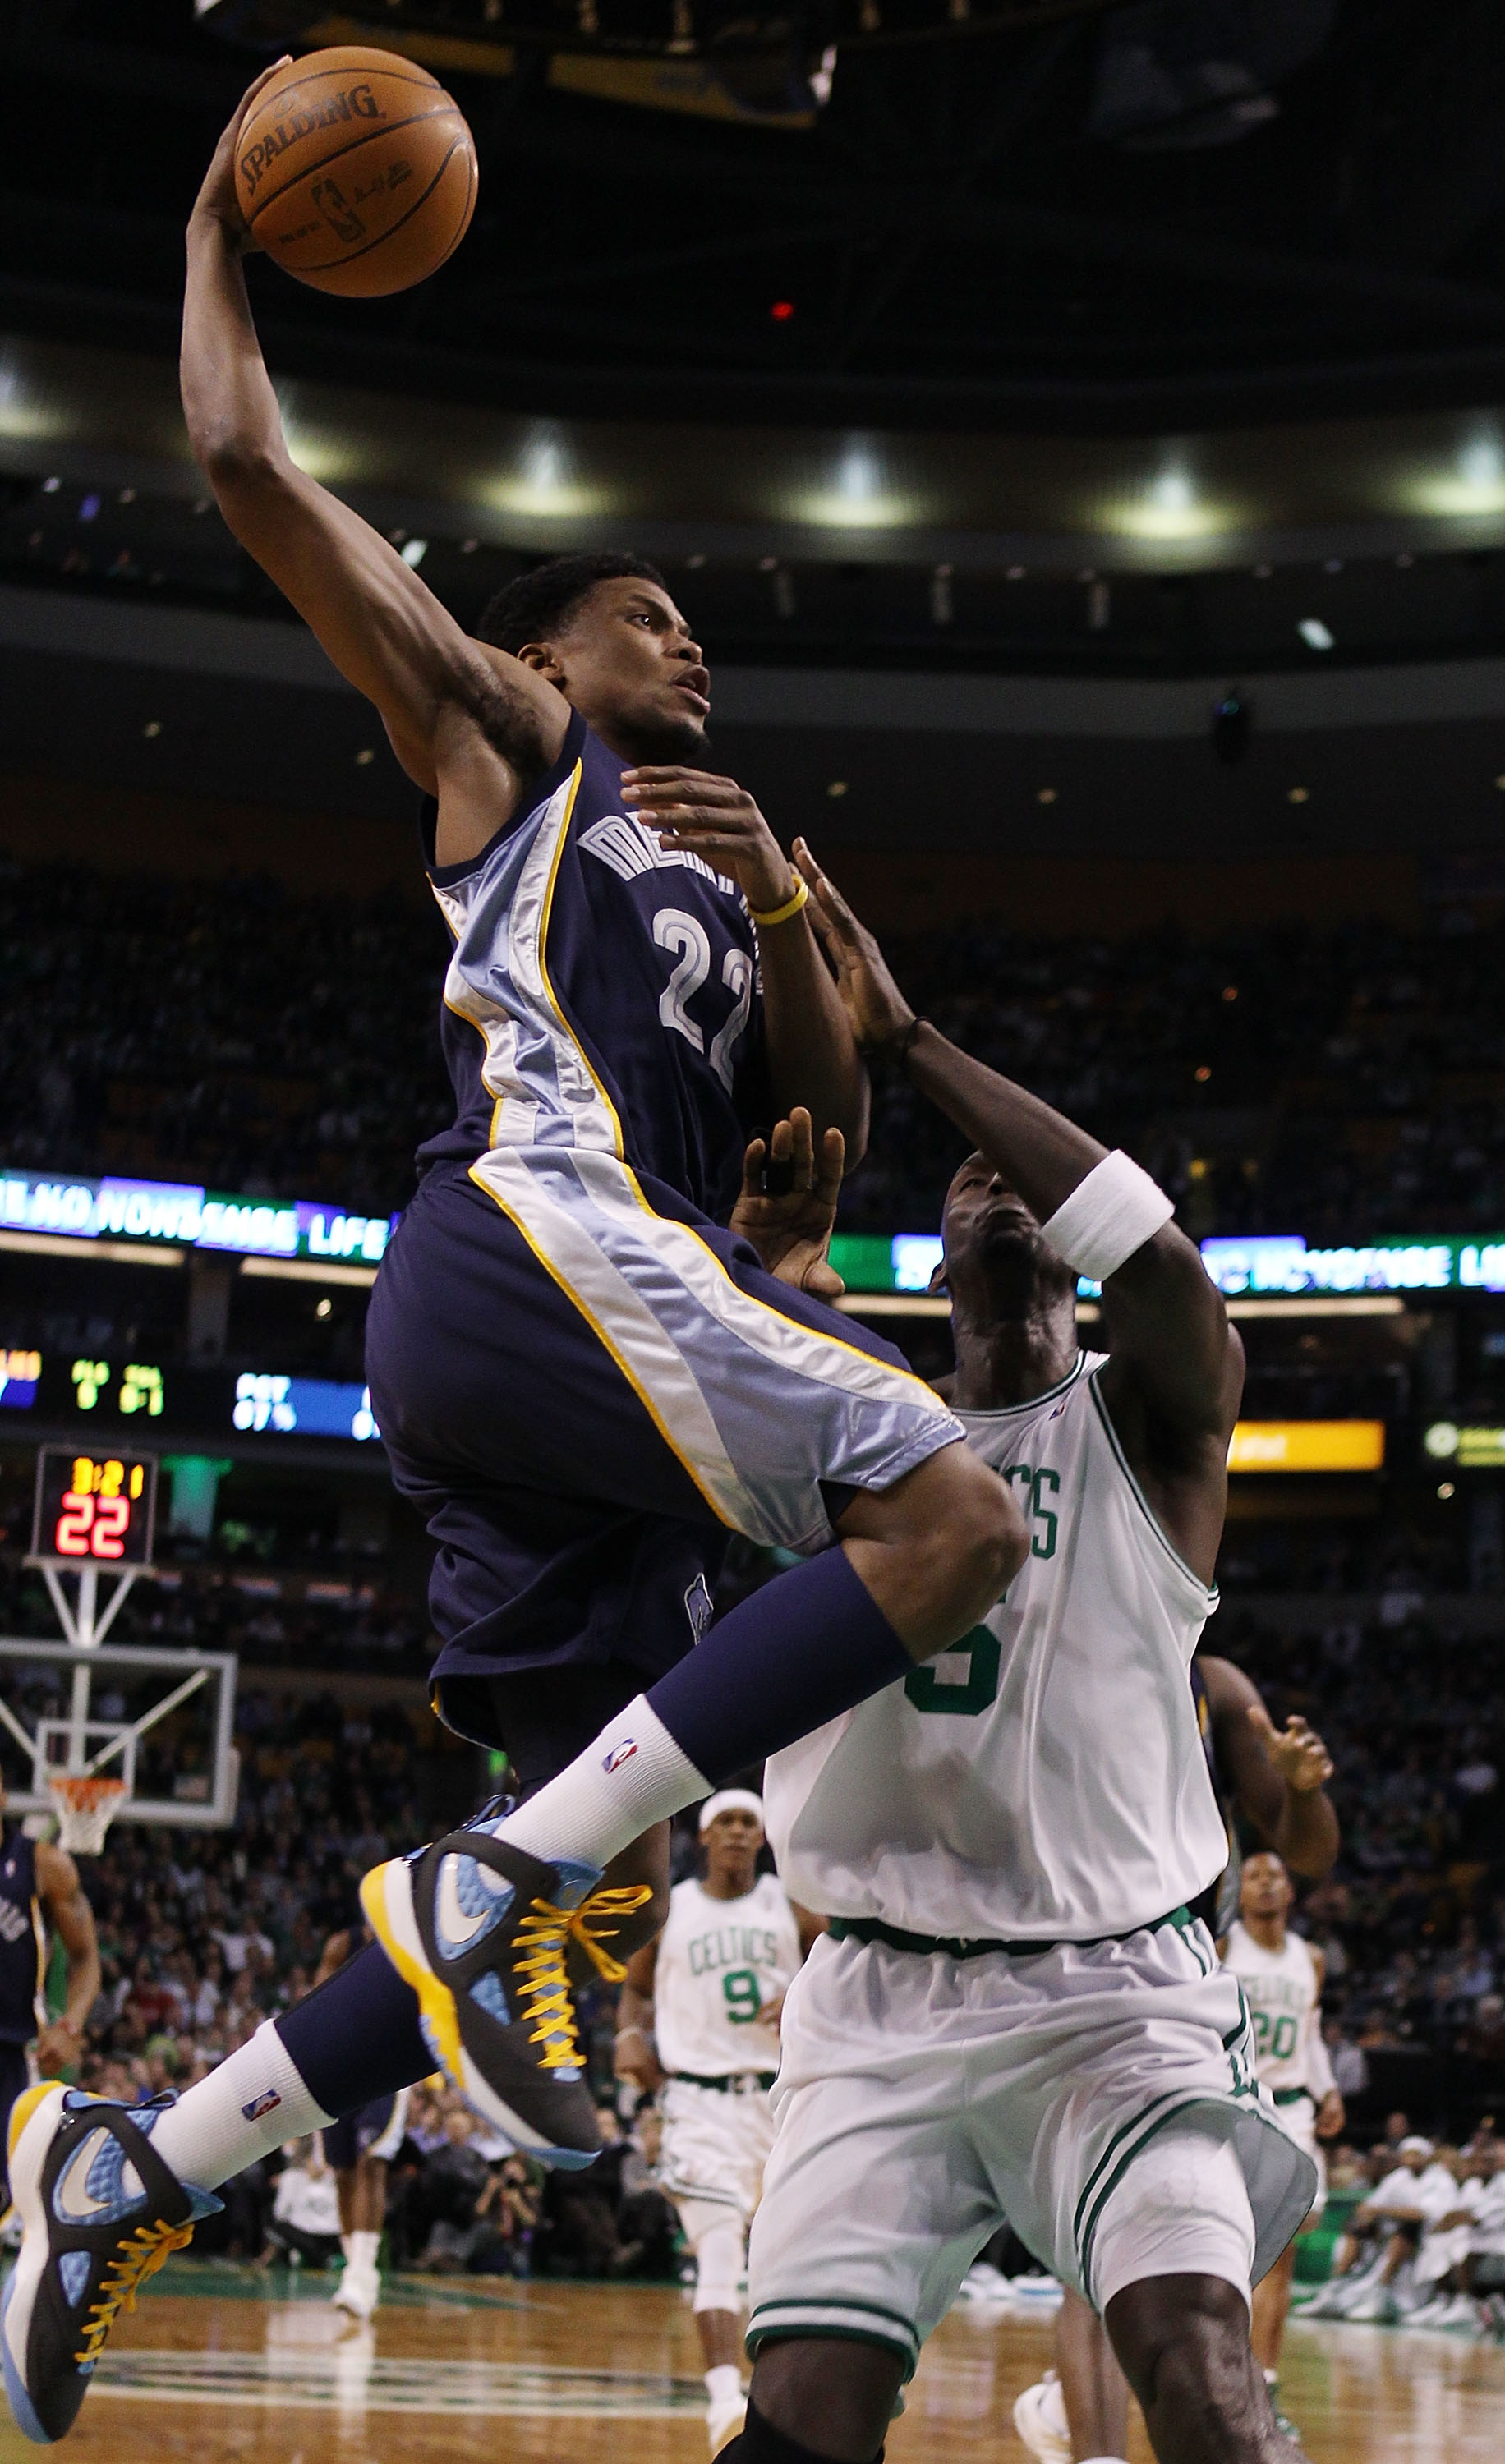 BOSTON - MARCH 10:  Rudy Gay #22 of the Memphis Grizzlies heads for the basket as Kevin Garnett #5 of the Boston Celtics defends on March 10, 2010 at the TD Garden in Boston, Massachusetts.  NOTE TO USER: User expressly acknowledges and agrees that, by do